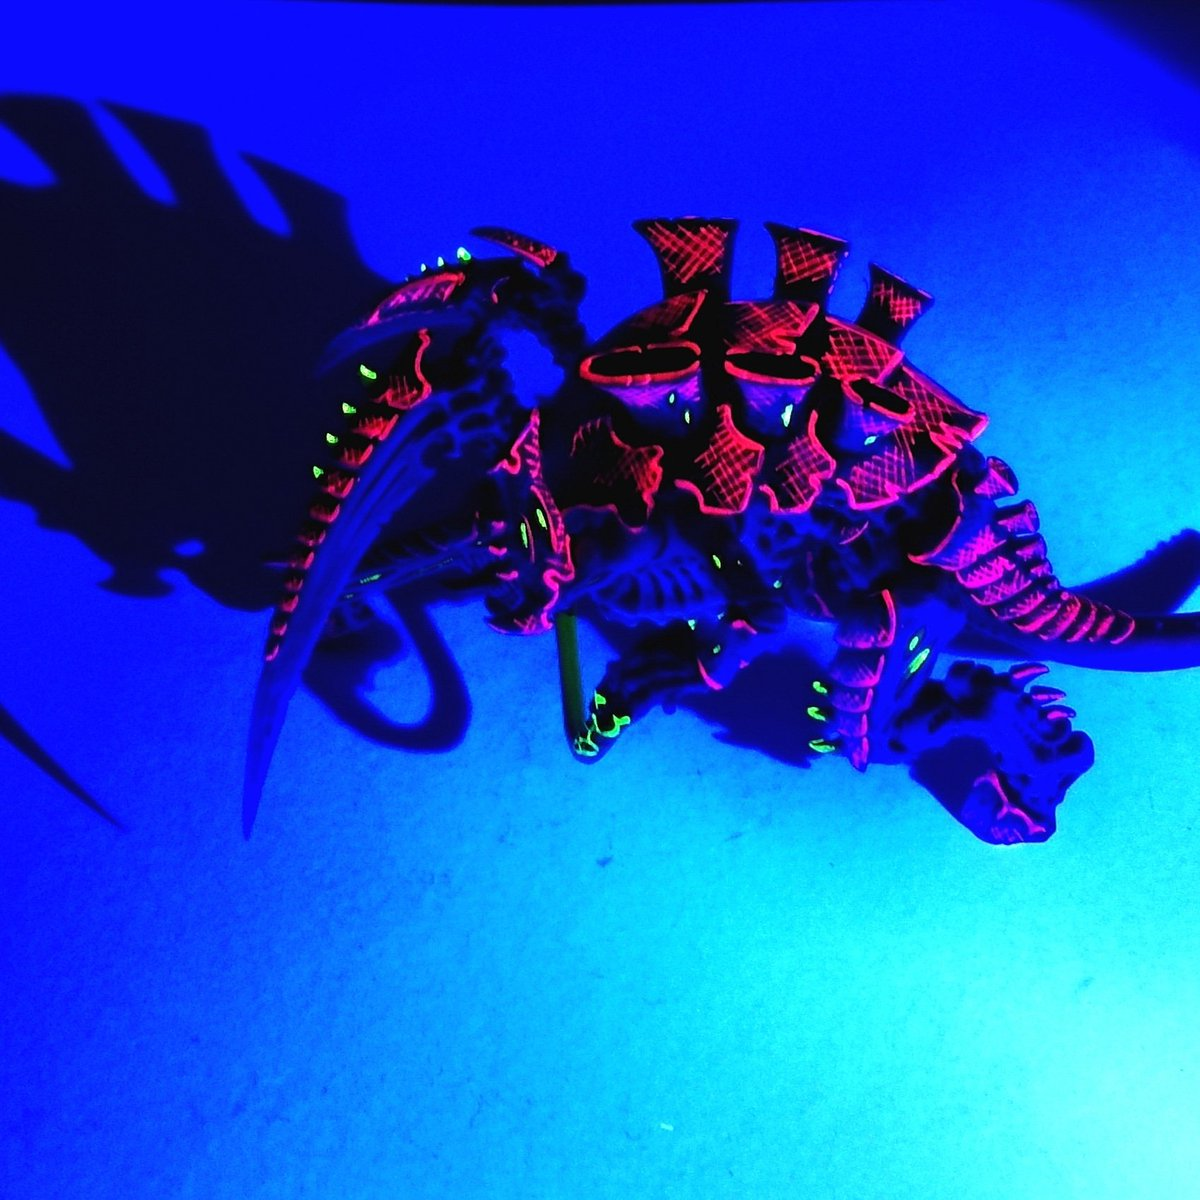 A picture of the darling bug in the dark (well, technically under a uv light, but still...) 😀  For a tutorial: https://t.co/oXRv2I41s9  #warhammer40000 #new40k #tyranids #warhammer #warhammer40k #paintingwarhammer #paintingminiatures  #womeninwarhammer #Warmongers https://t.co/zojsVeblNe